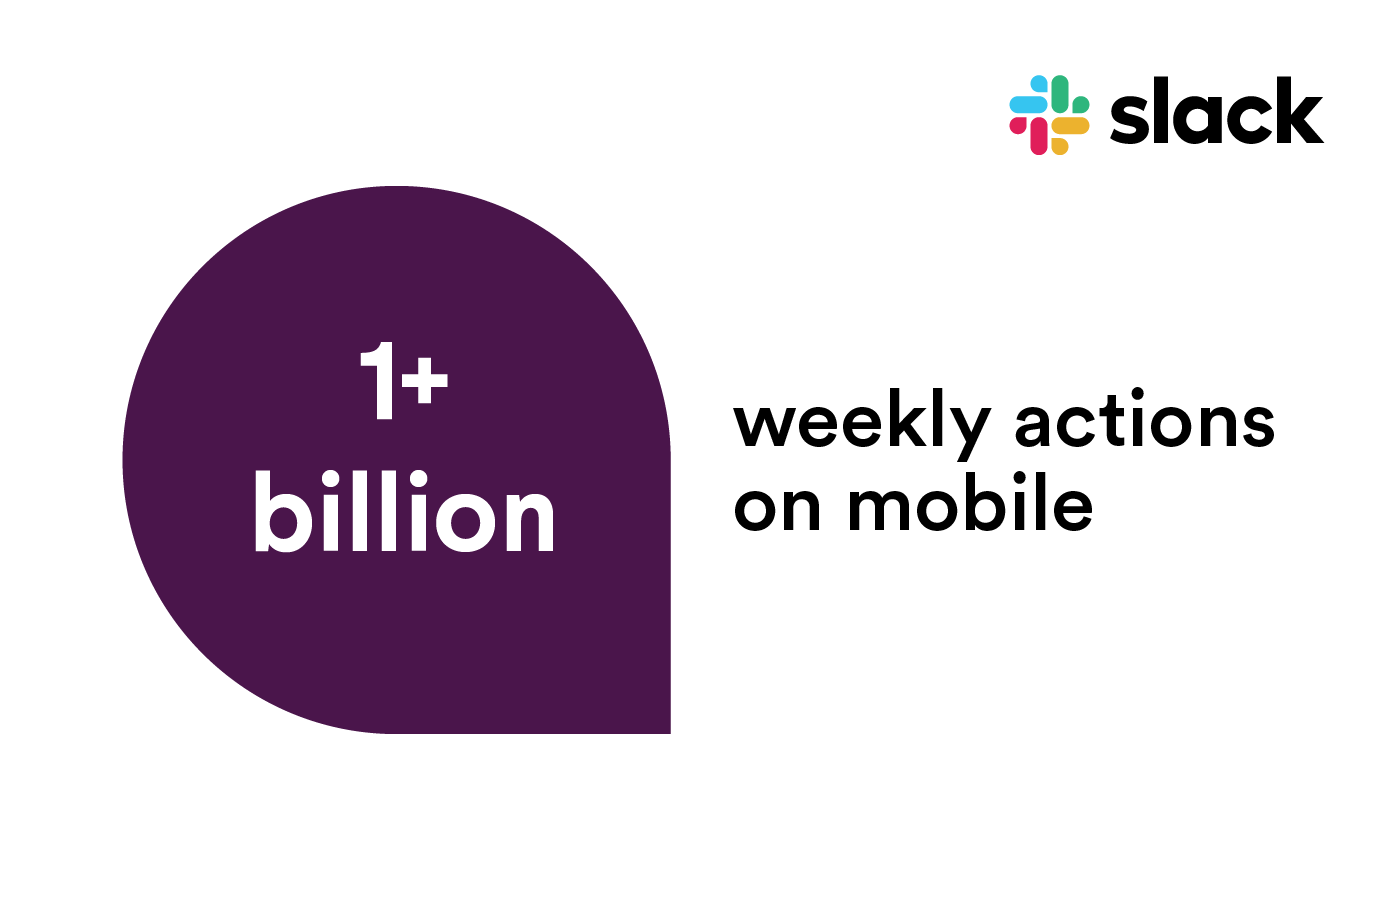 Graphic showing 1-plus billion weekly actions on mobile Slack